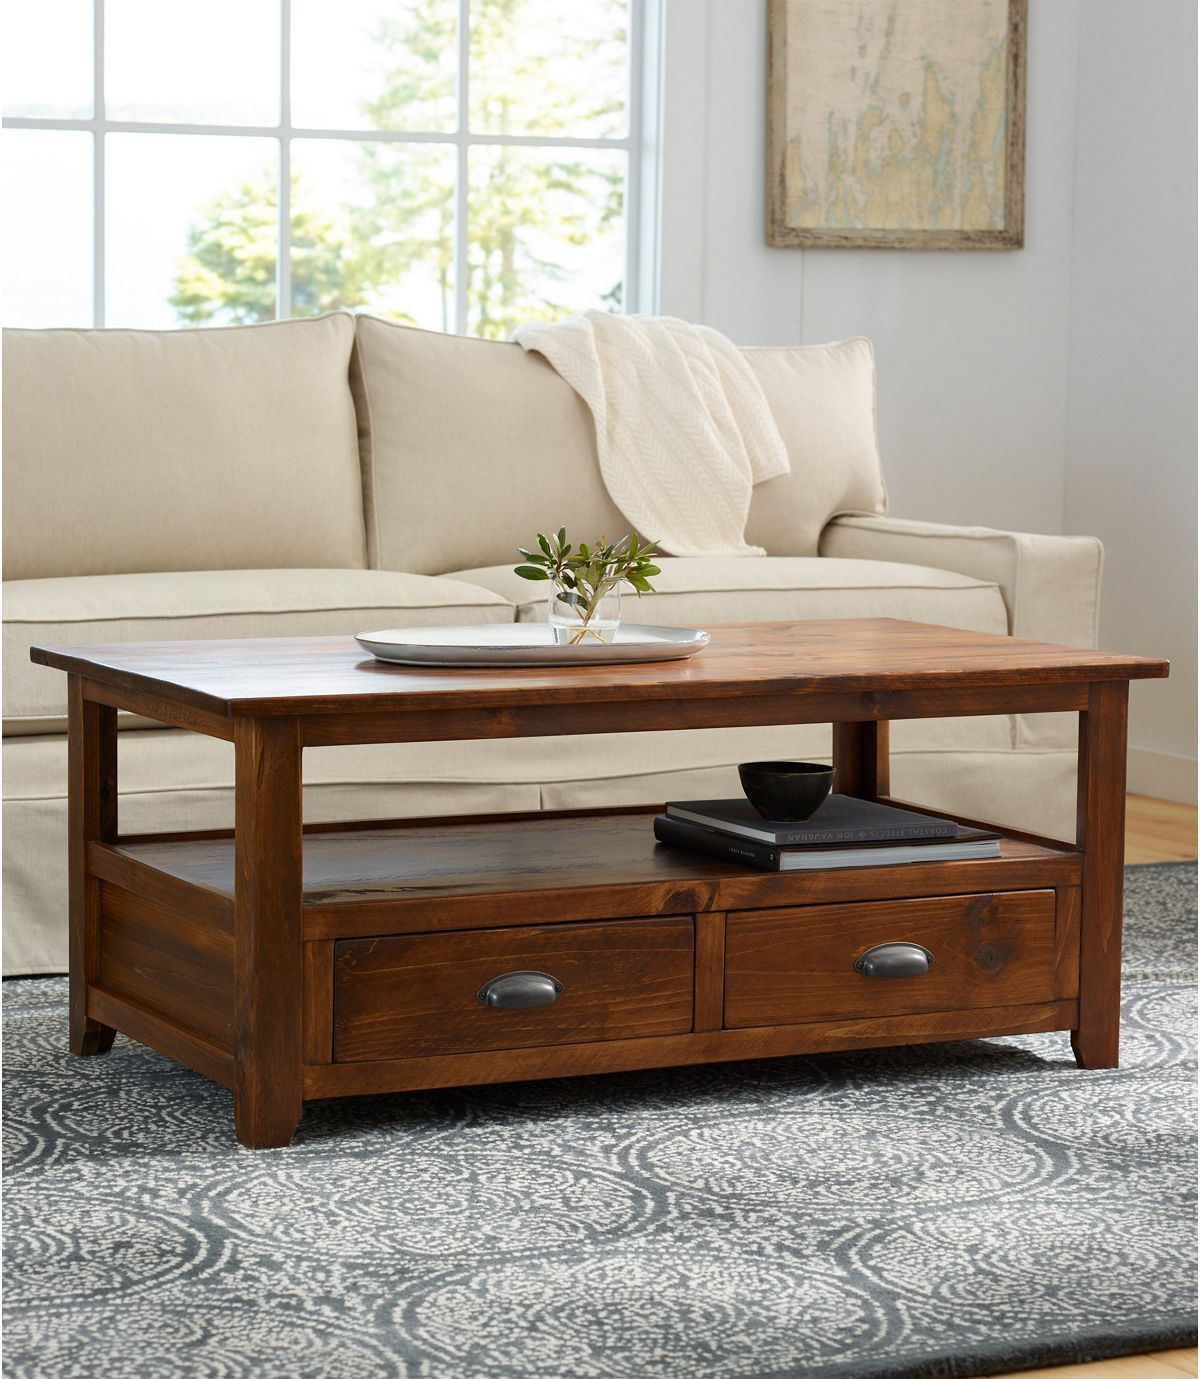 Rustic Wooden Coffee Table Rustic Wooden Coffee Table Furniture New England Furniture [ 1379 x 1200 Pixel ]